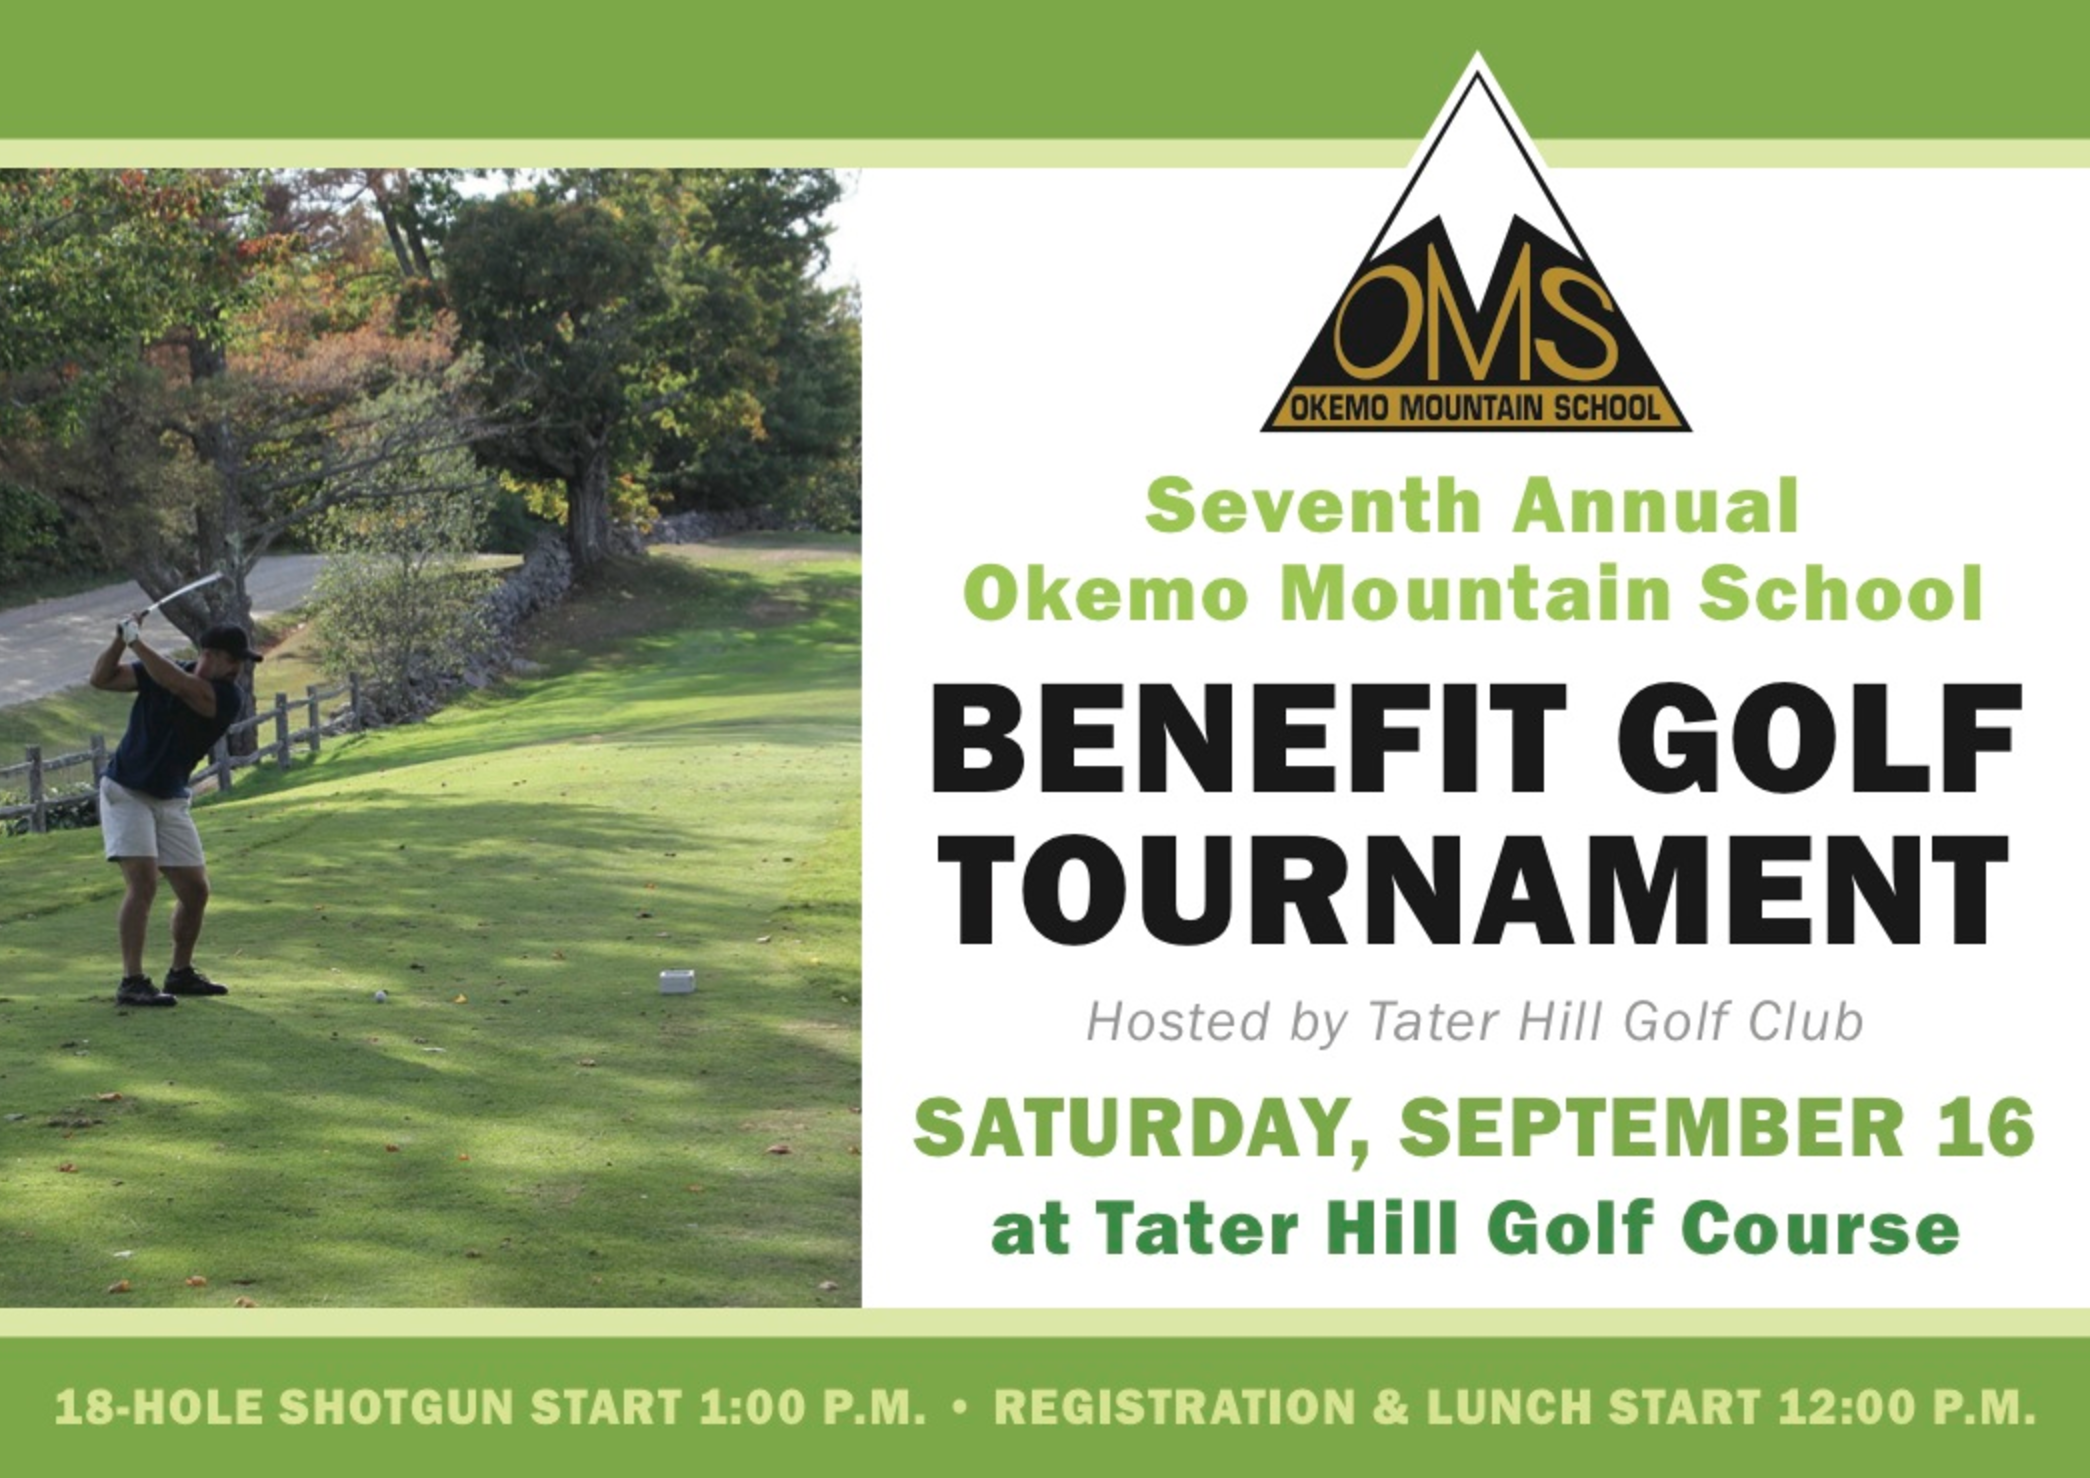 oms-golf-tournament-2017